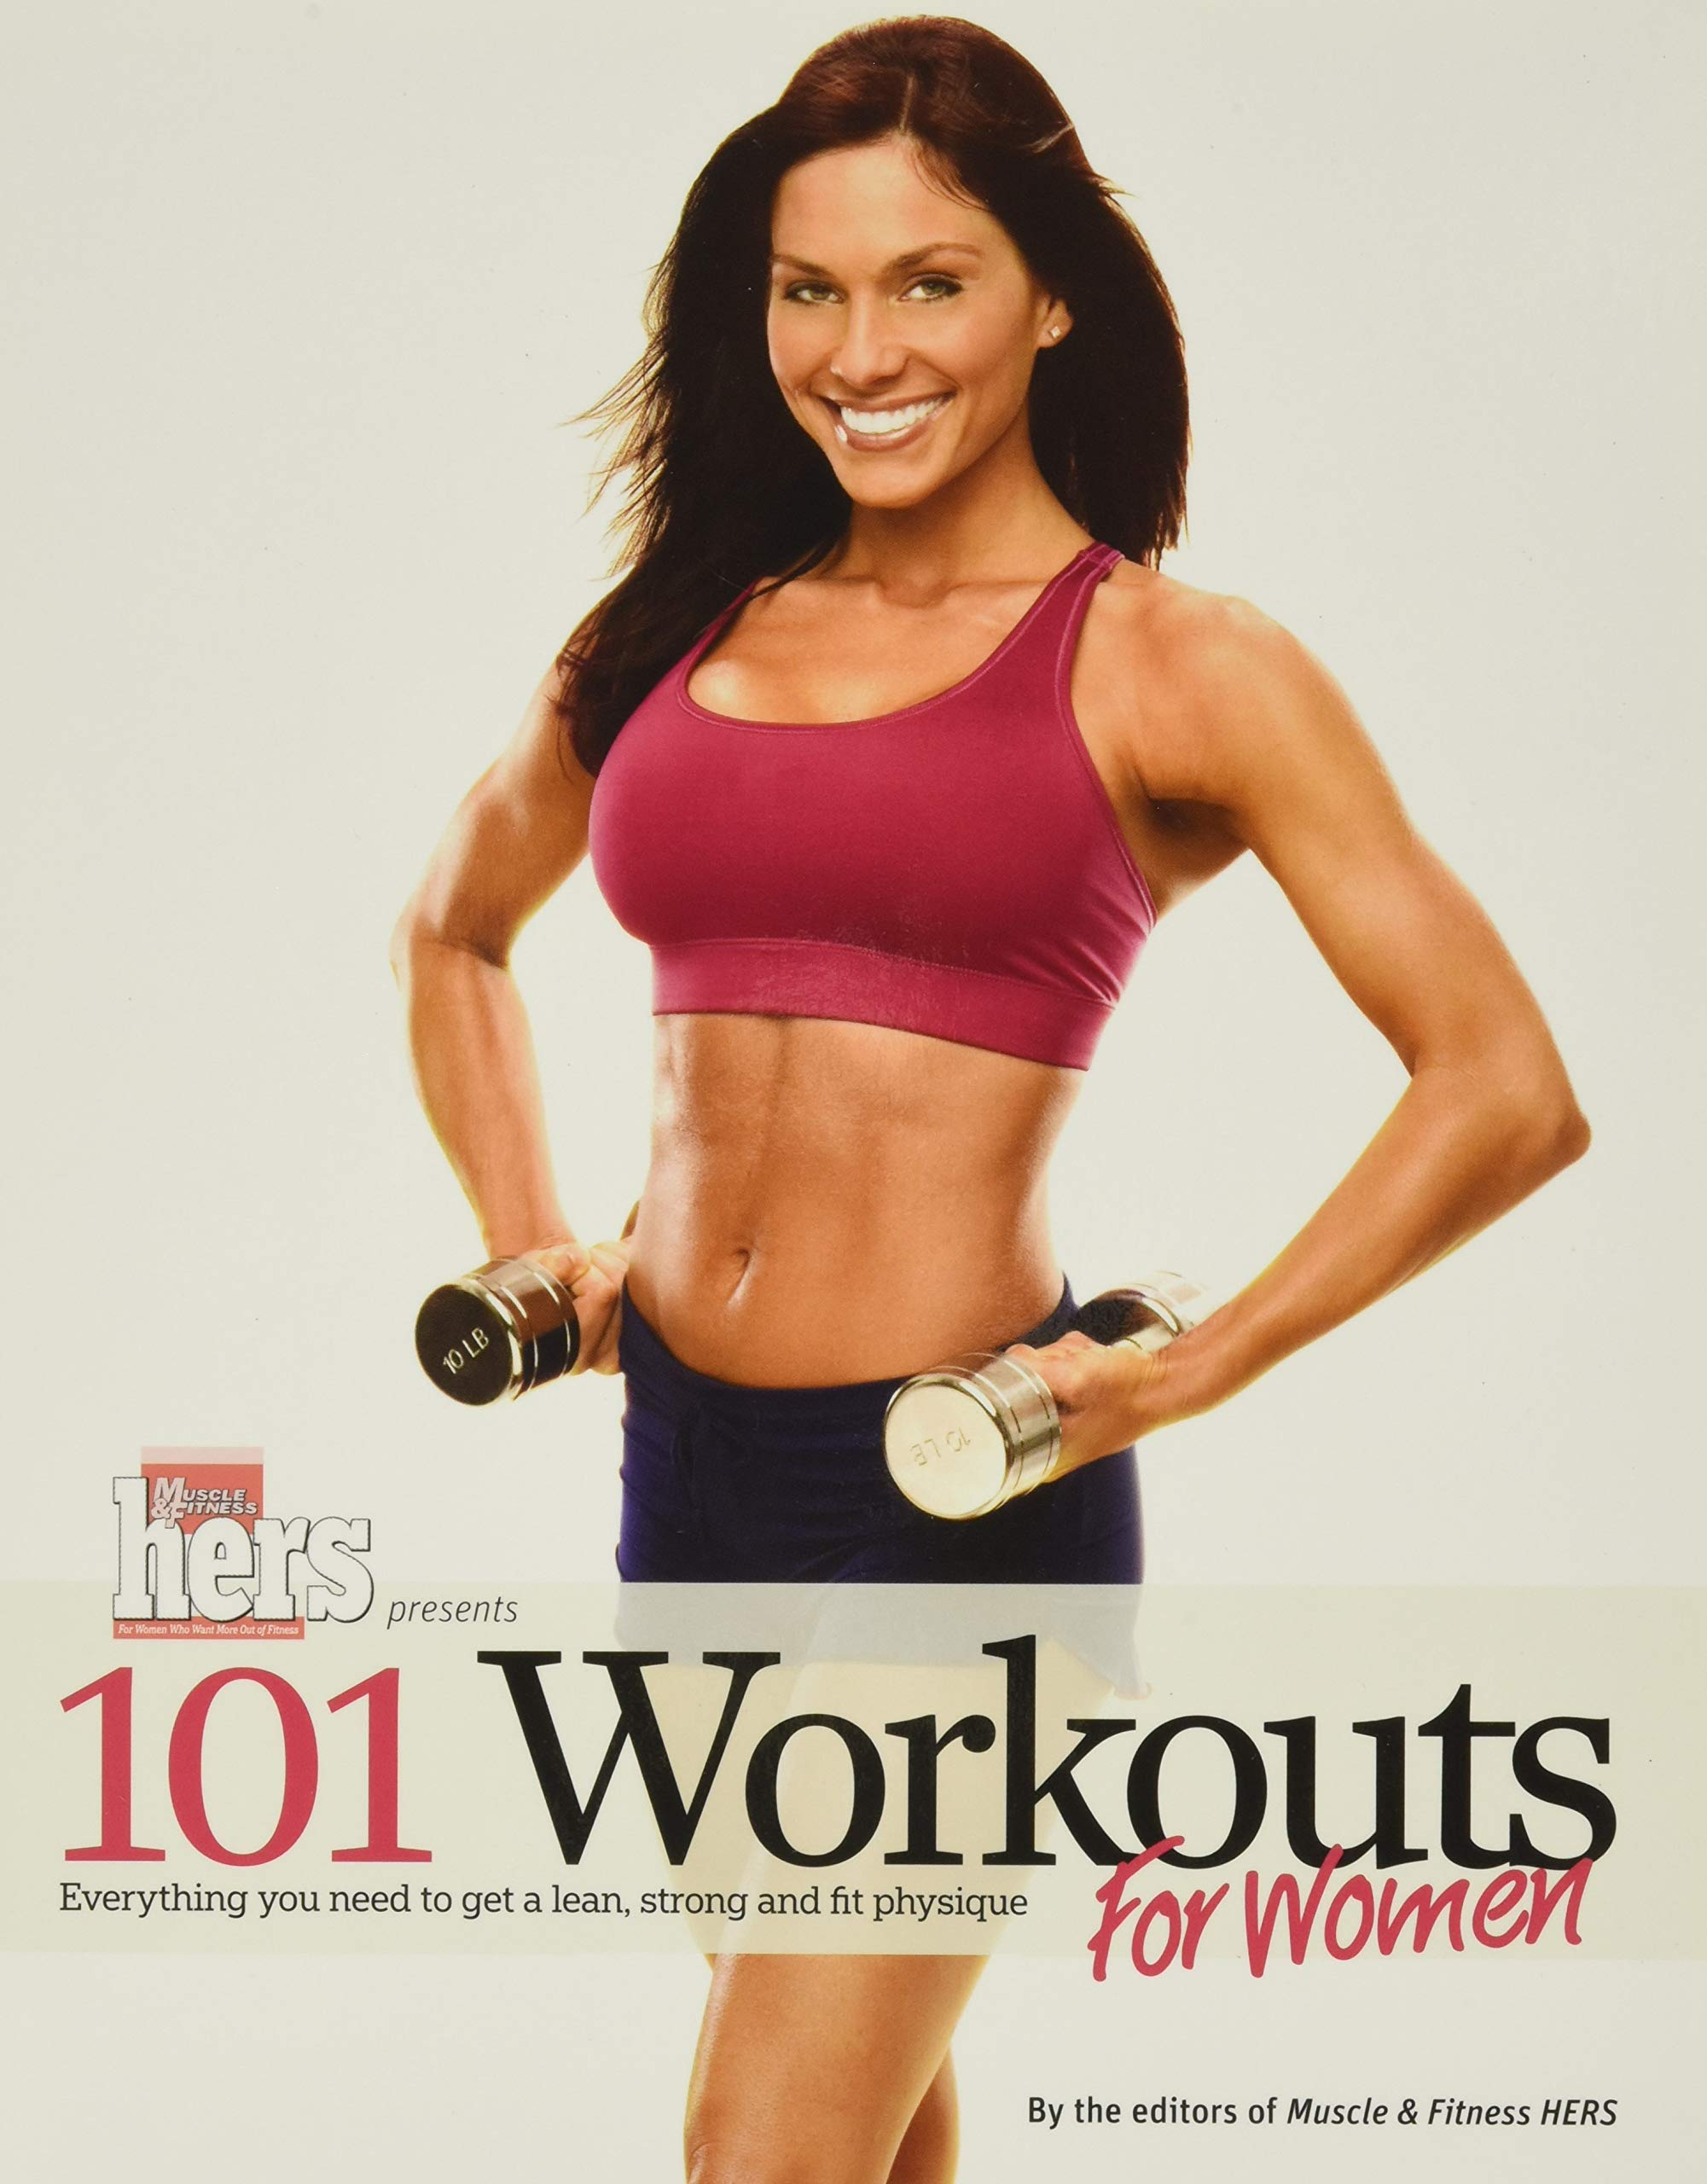 101 Workouts For Women: Everything You Need to Get a Lean, Strong, and Fit Physique 1